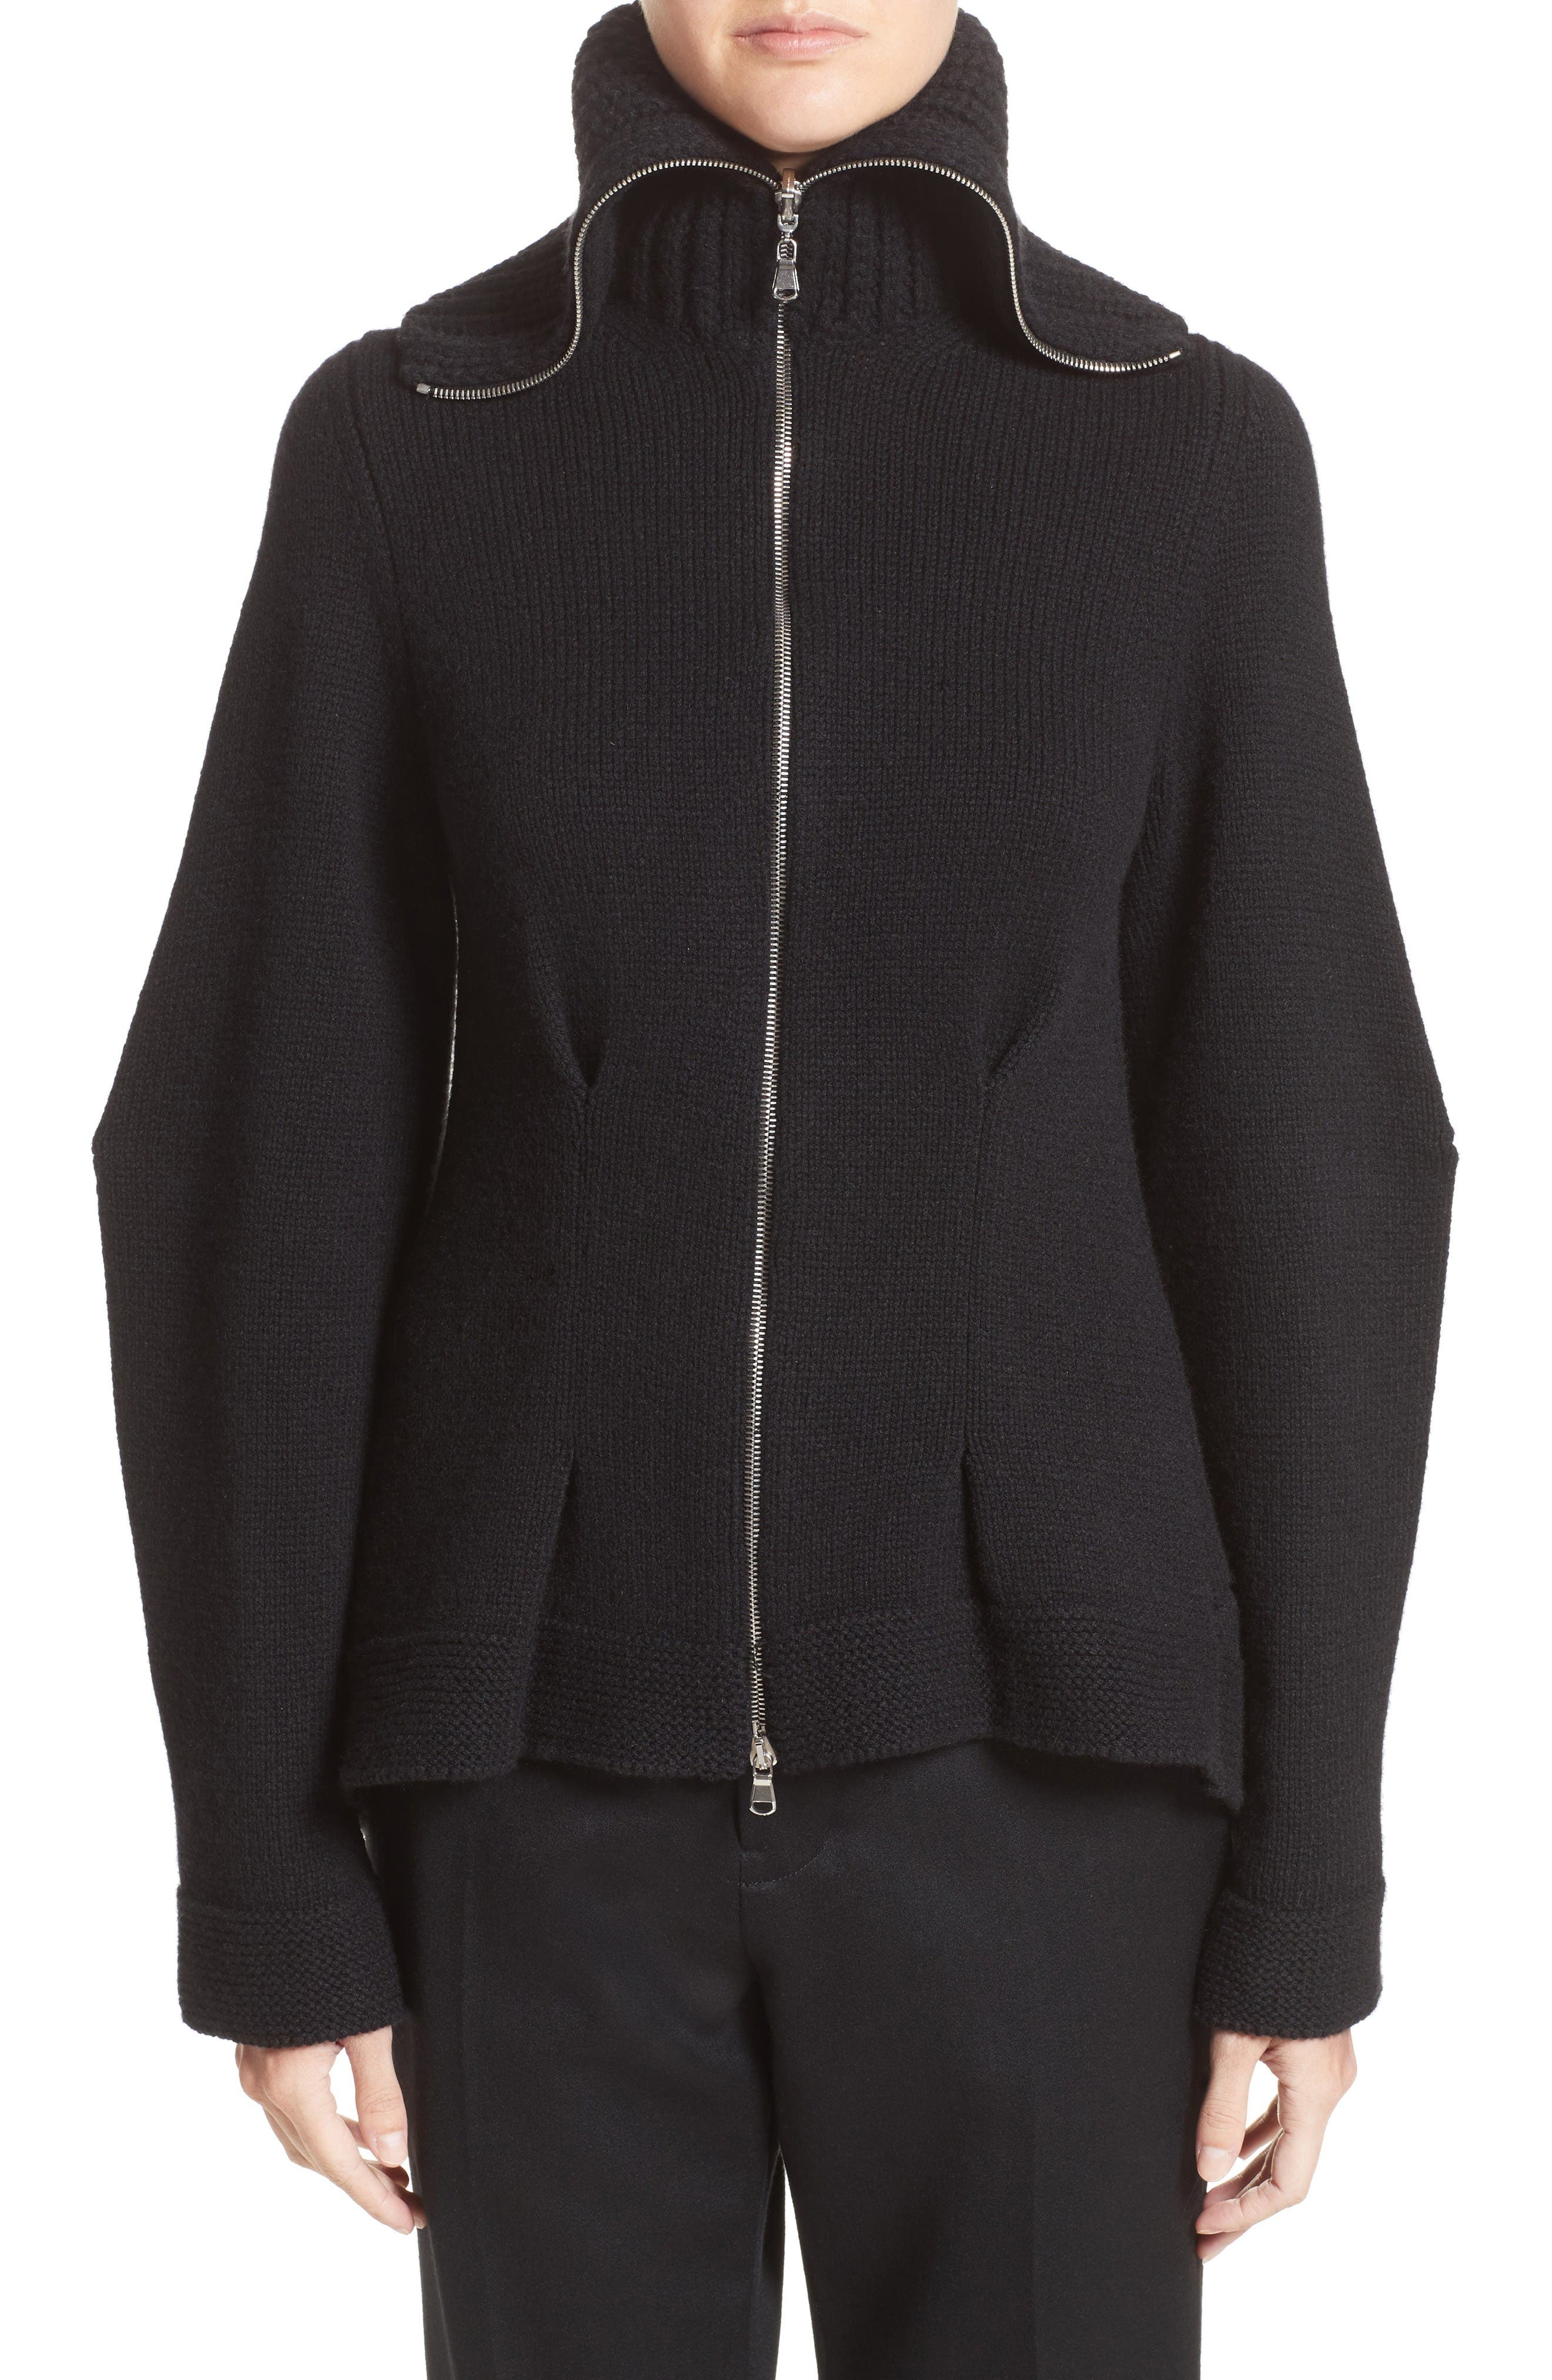 Alexander McQueen Knit Turtleneck Cardigan